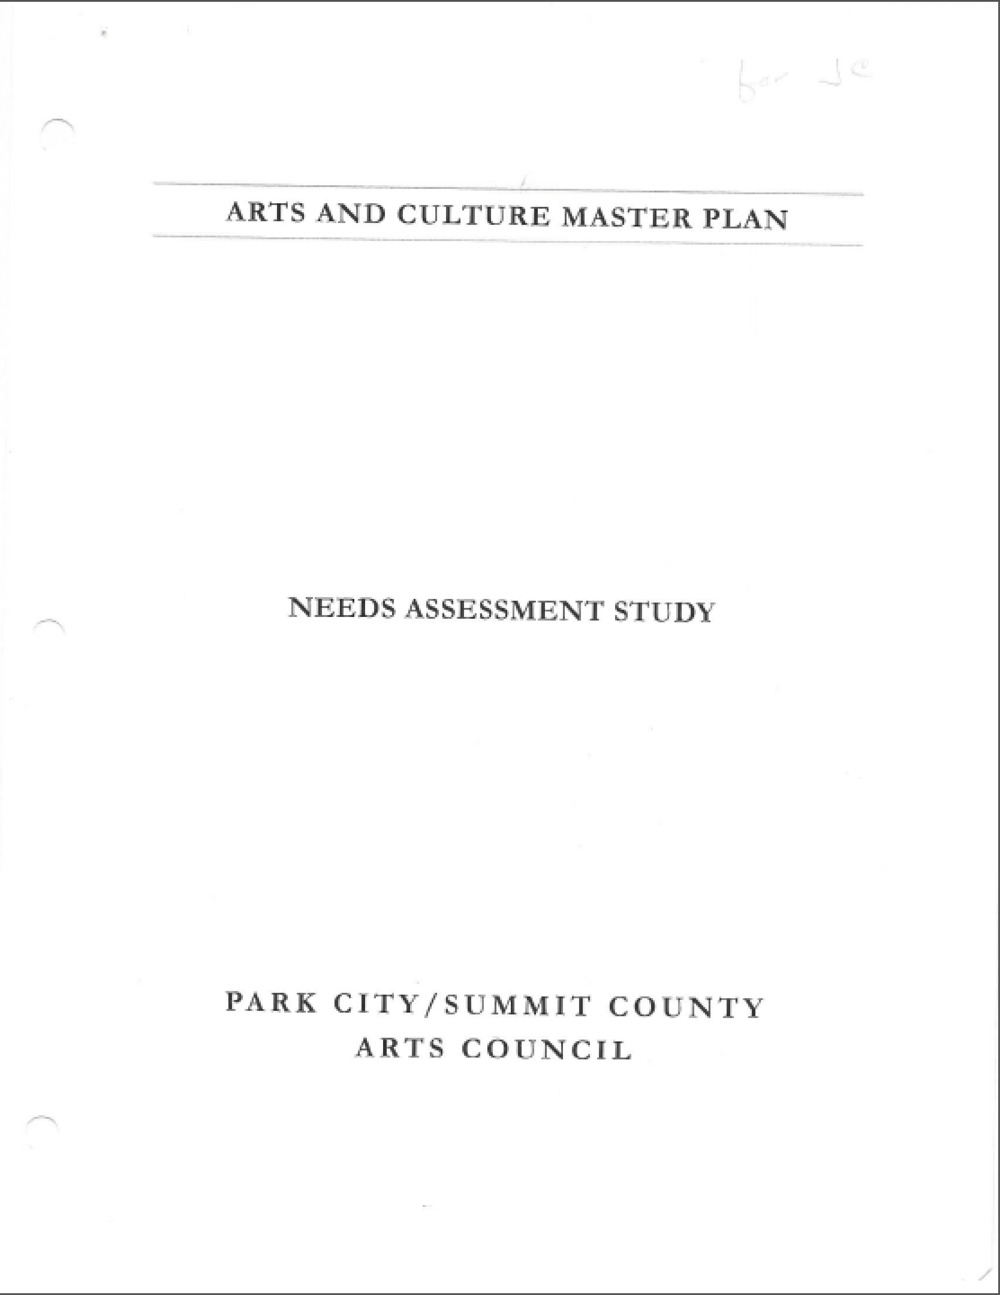 1999 PCSC Arts and Culture Master Plan